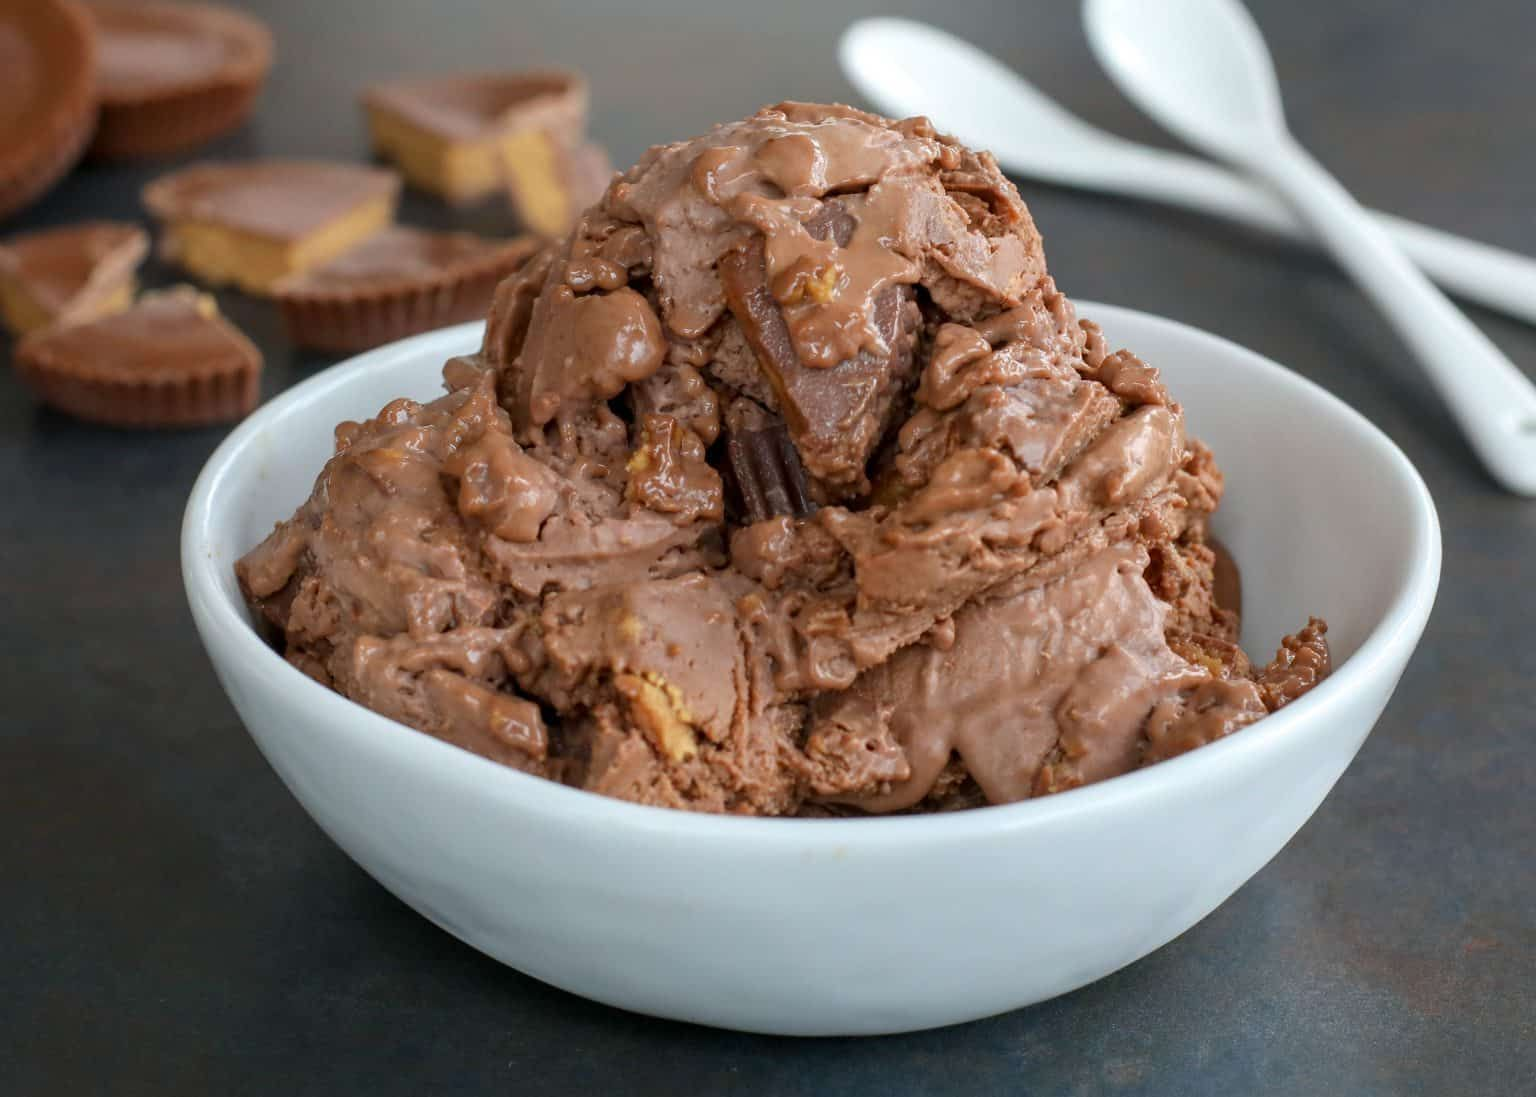 Homemade chocolate peanut butter ice cream is a hit in